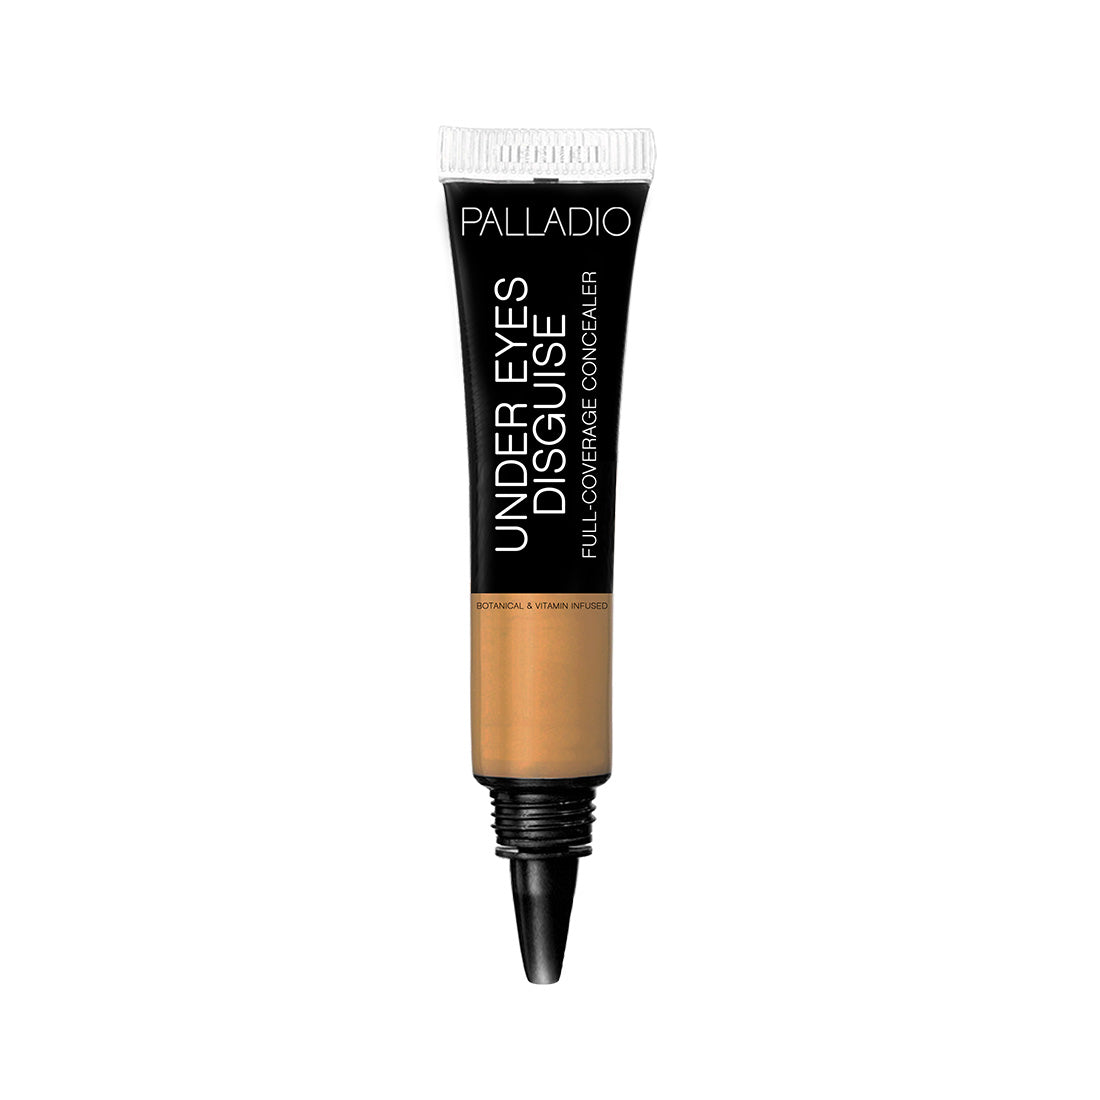 UNDER EYES DISGUISE CONCEALER - FRAPPE